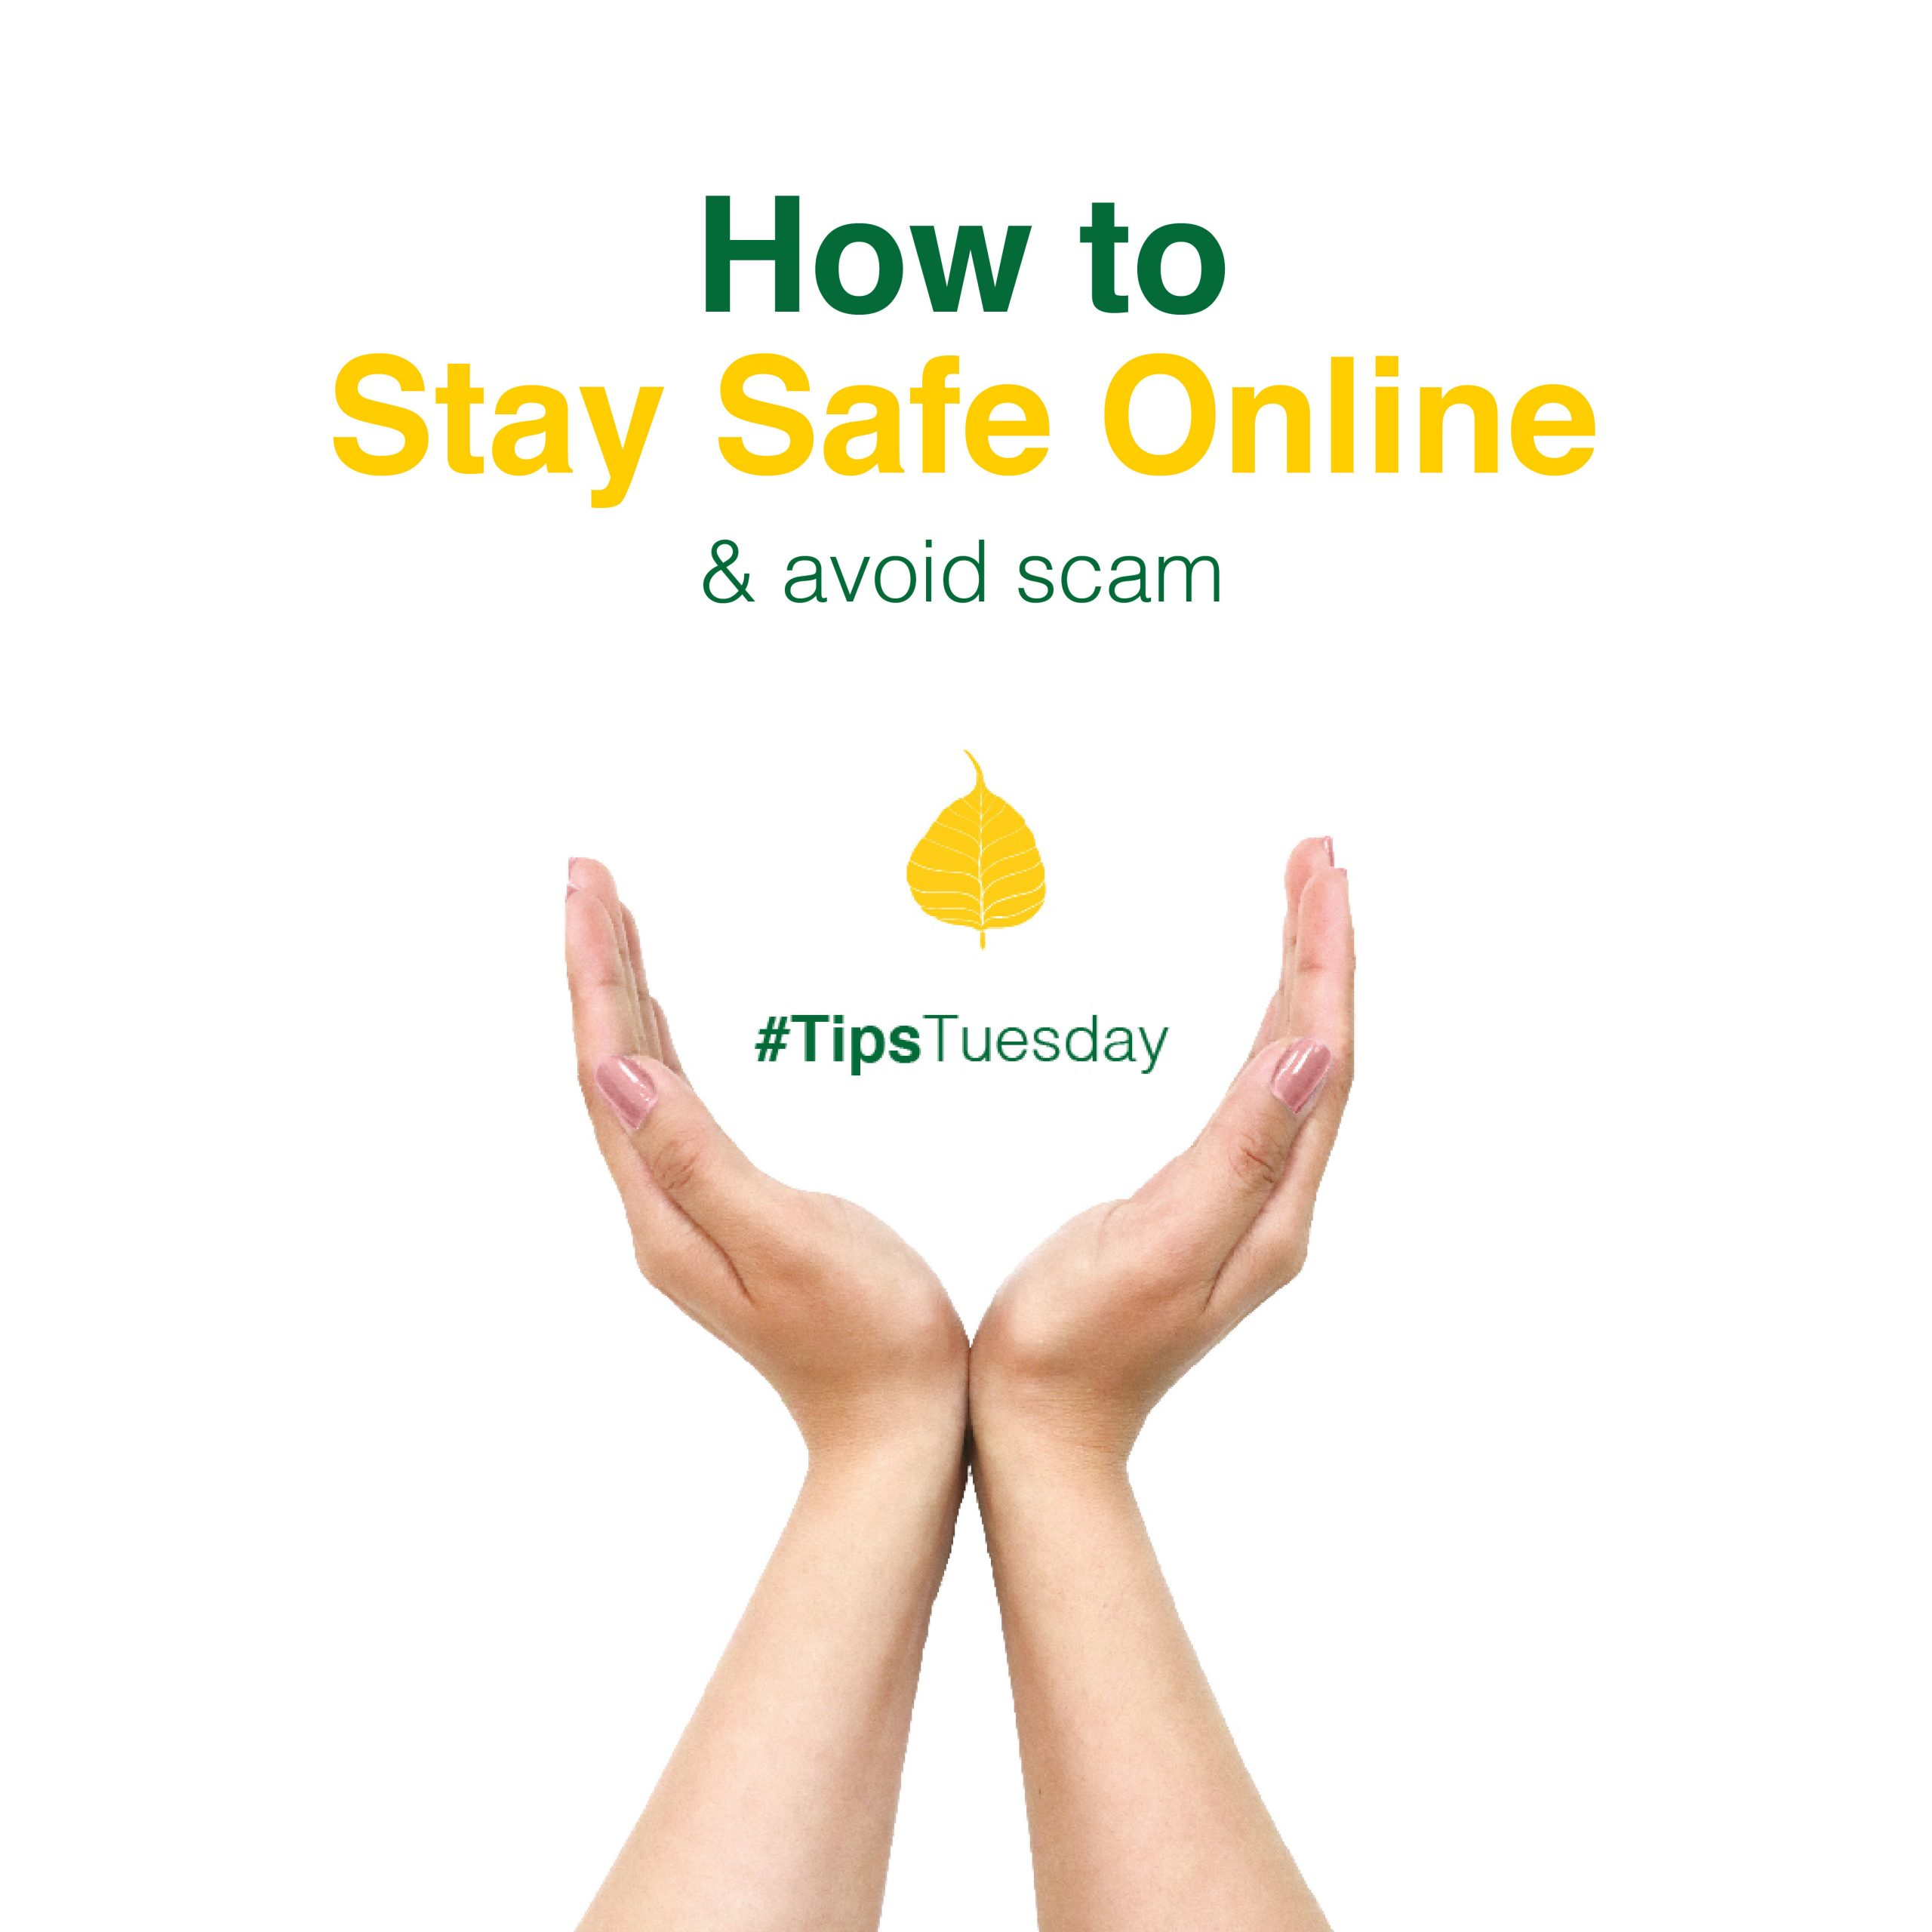 How to Stay Safe Online & Avoid Scam